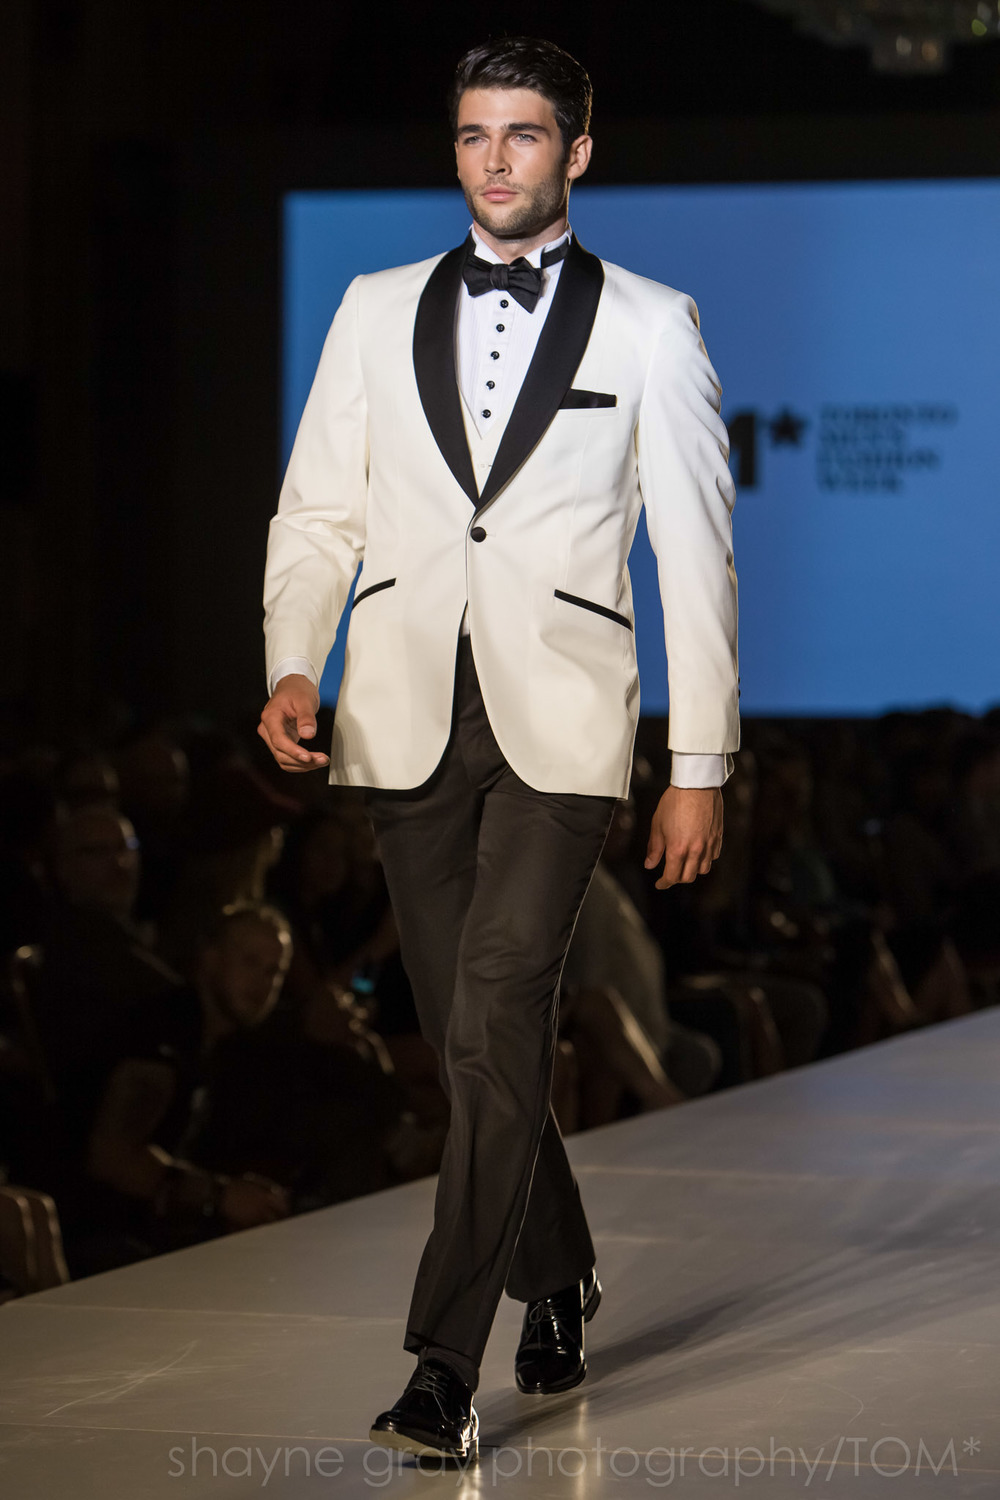 Shayne-Gray-Toronto-men's-fashion_week-TOM-christopher-bates-7396.jpg